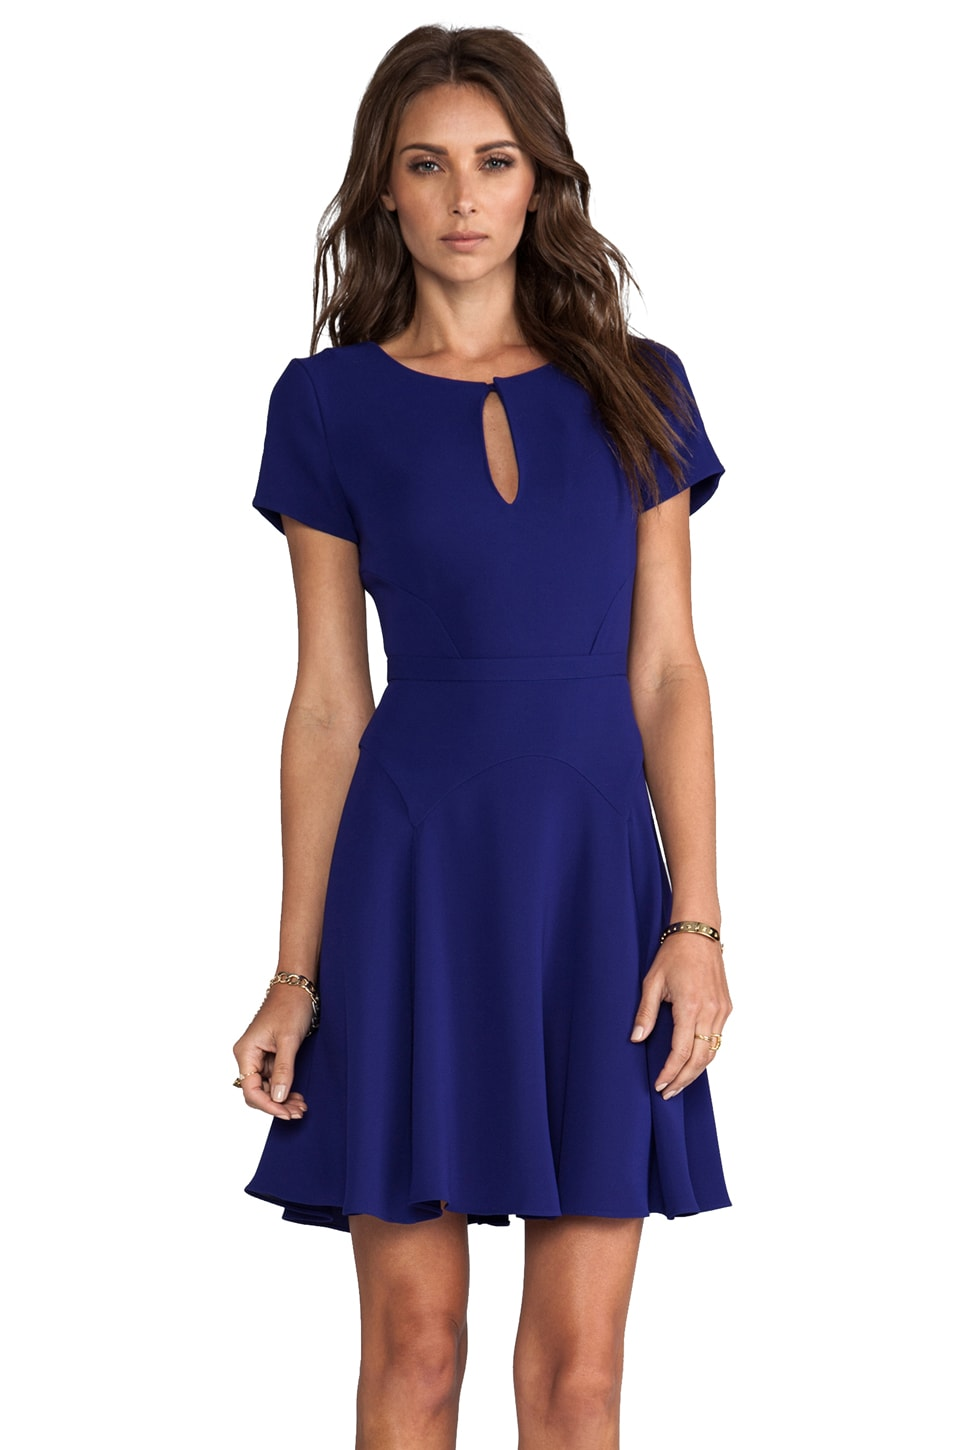 Diane von Furstenberg Raizel Dress in Ultramarine